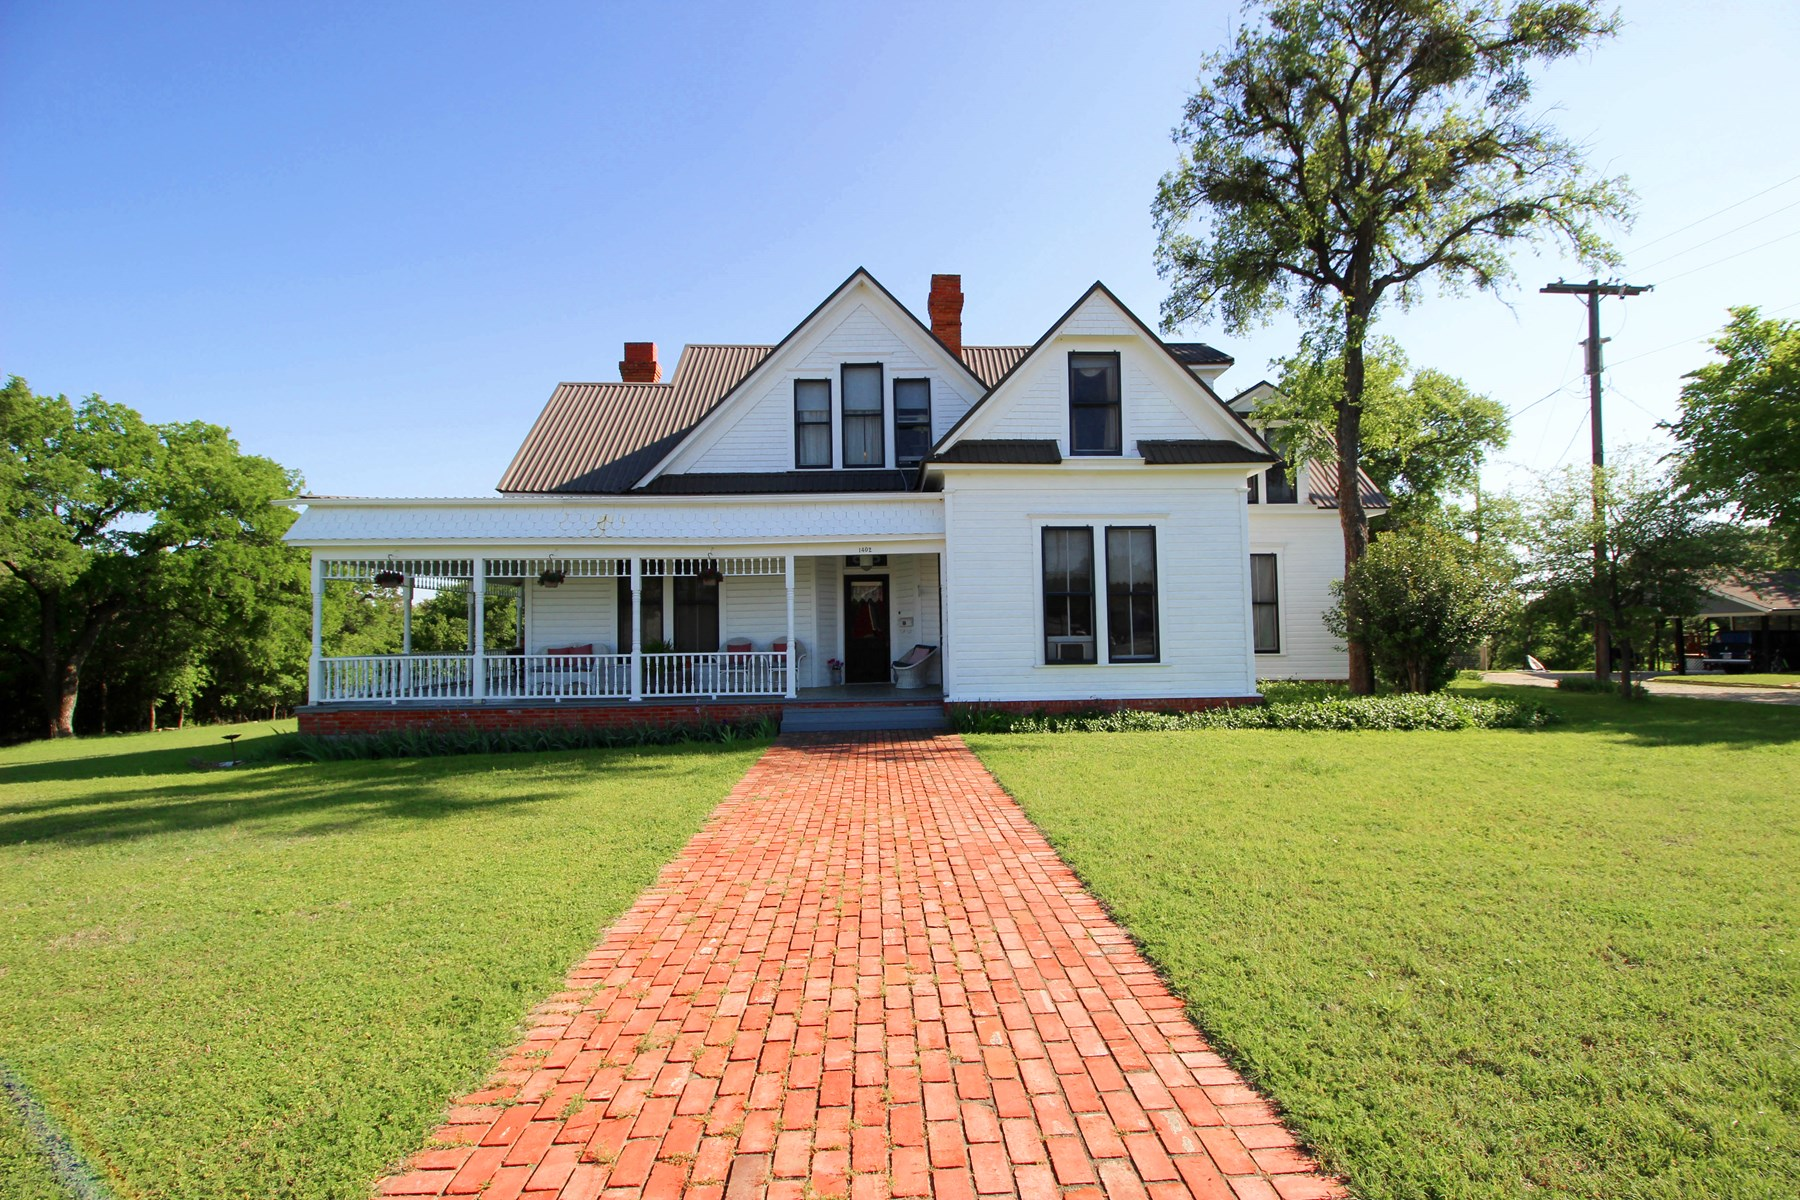 Historic Home in Gatesville, Texas For Sale on Leon River